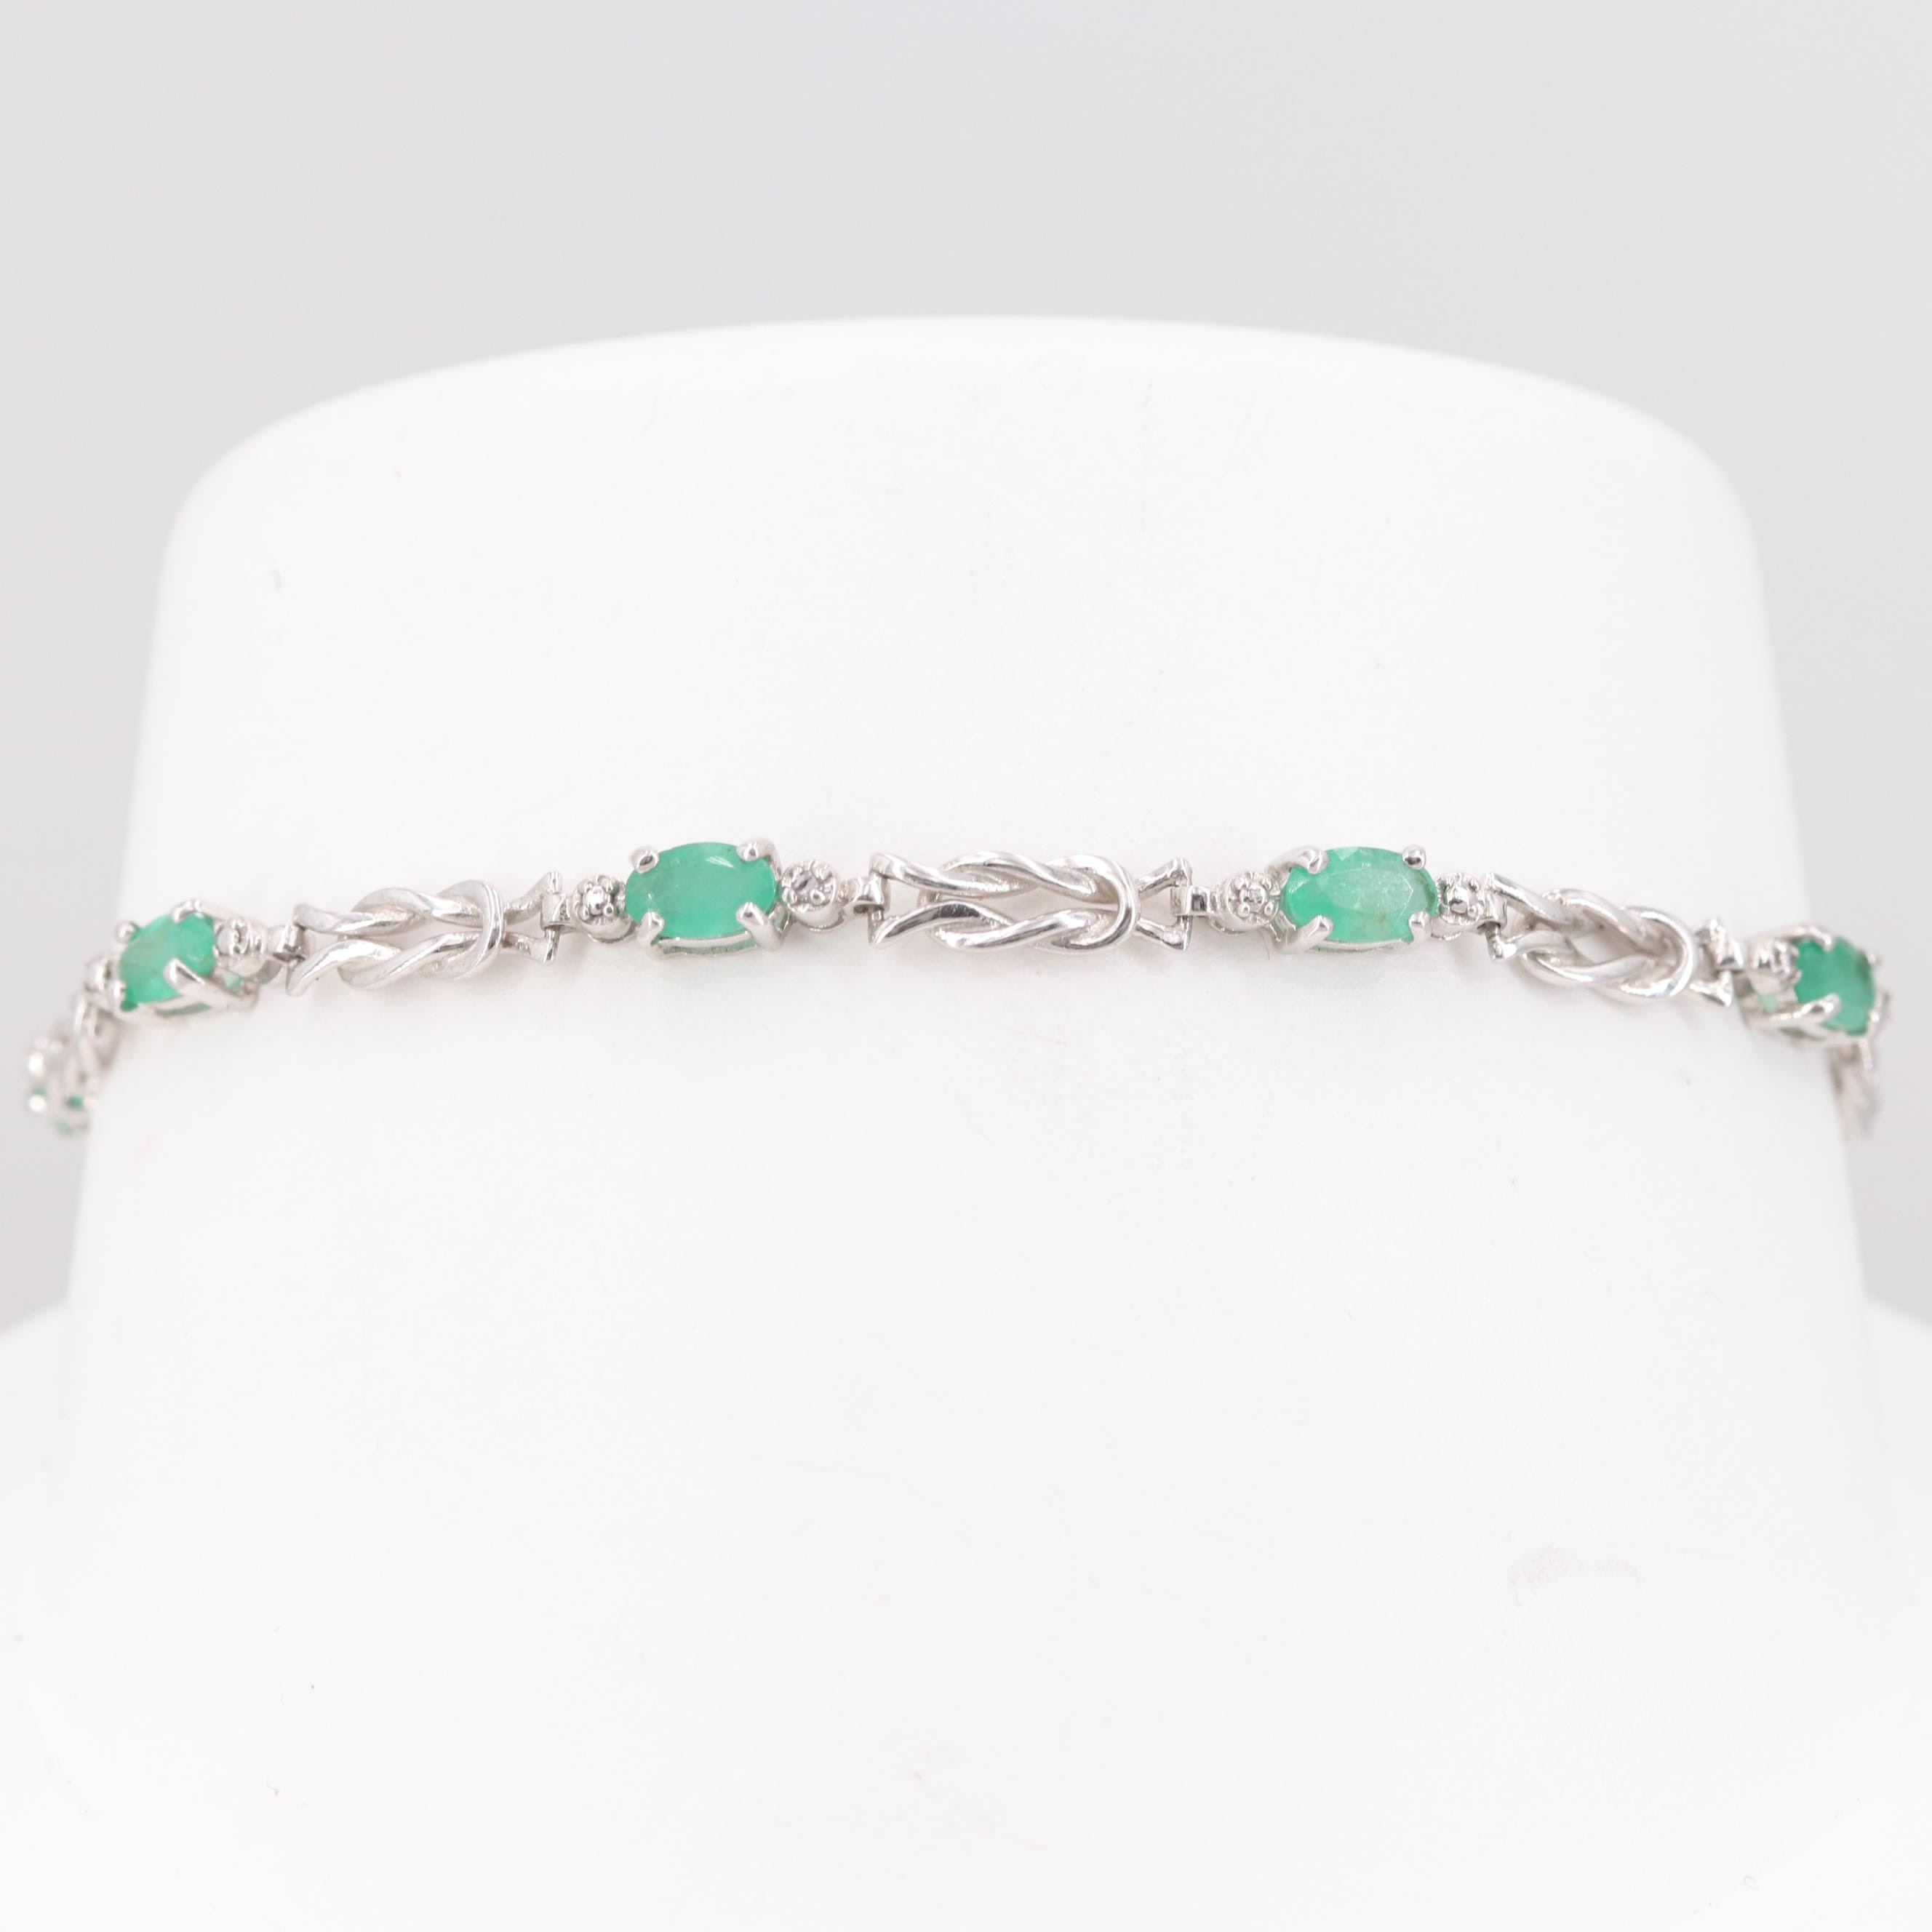 10K White Gold Emerald and Diamond Bracelet